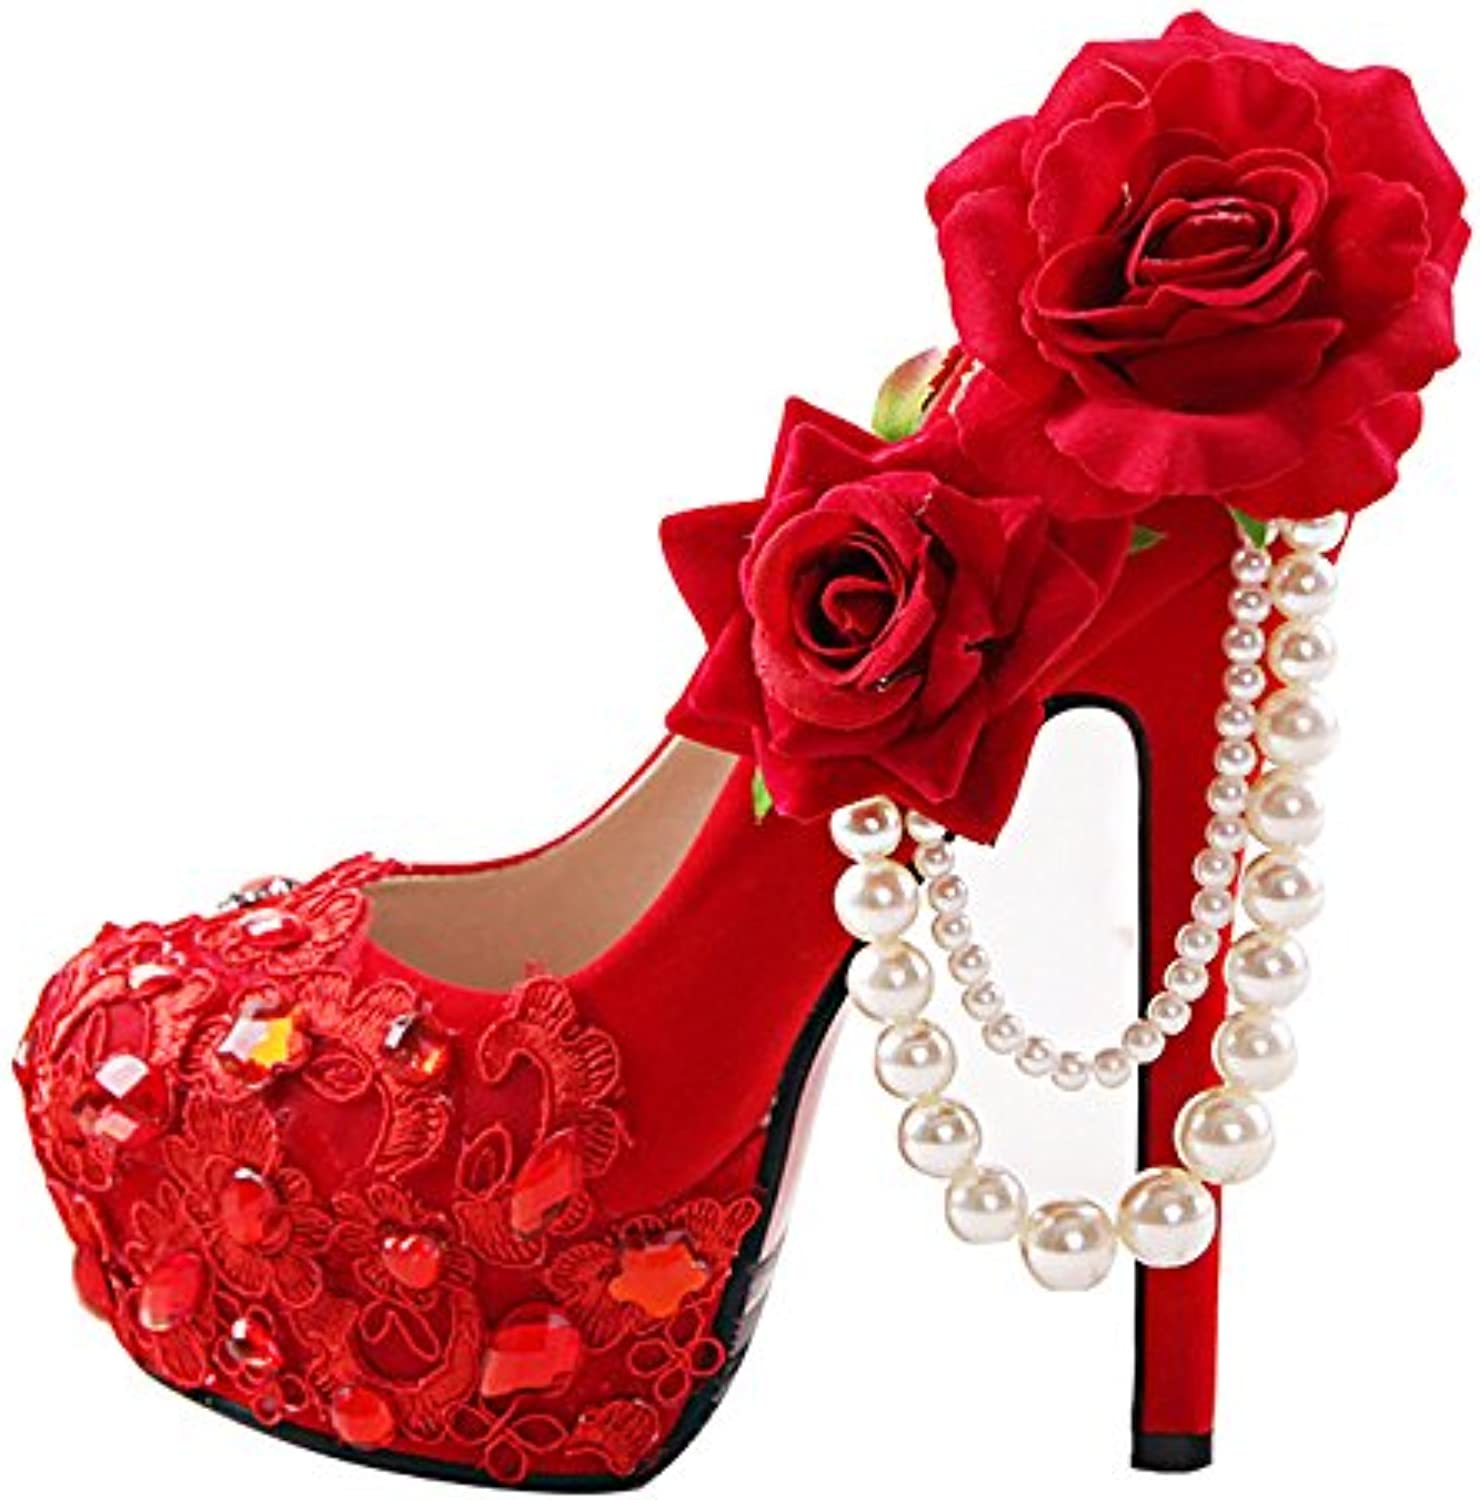 VIVIOO Prom Prom Prom Sandals rosso Peony,Flower,Rhinestone,Bride's,High Heels,Fine Hair,Wedding Dress,Formal Dress,Toasting... | Terrific Value